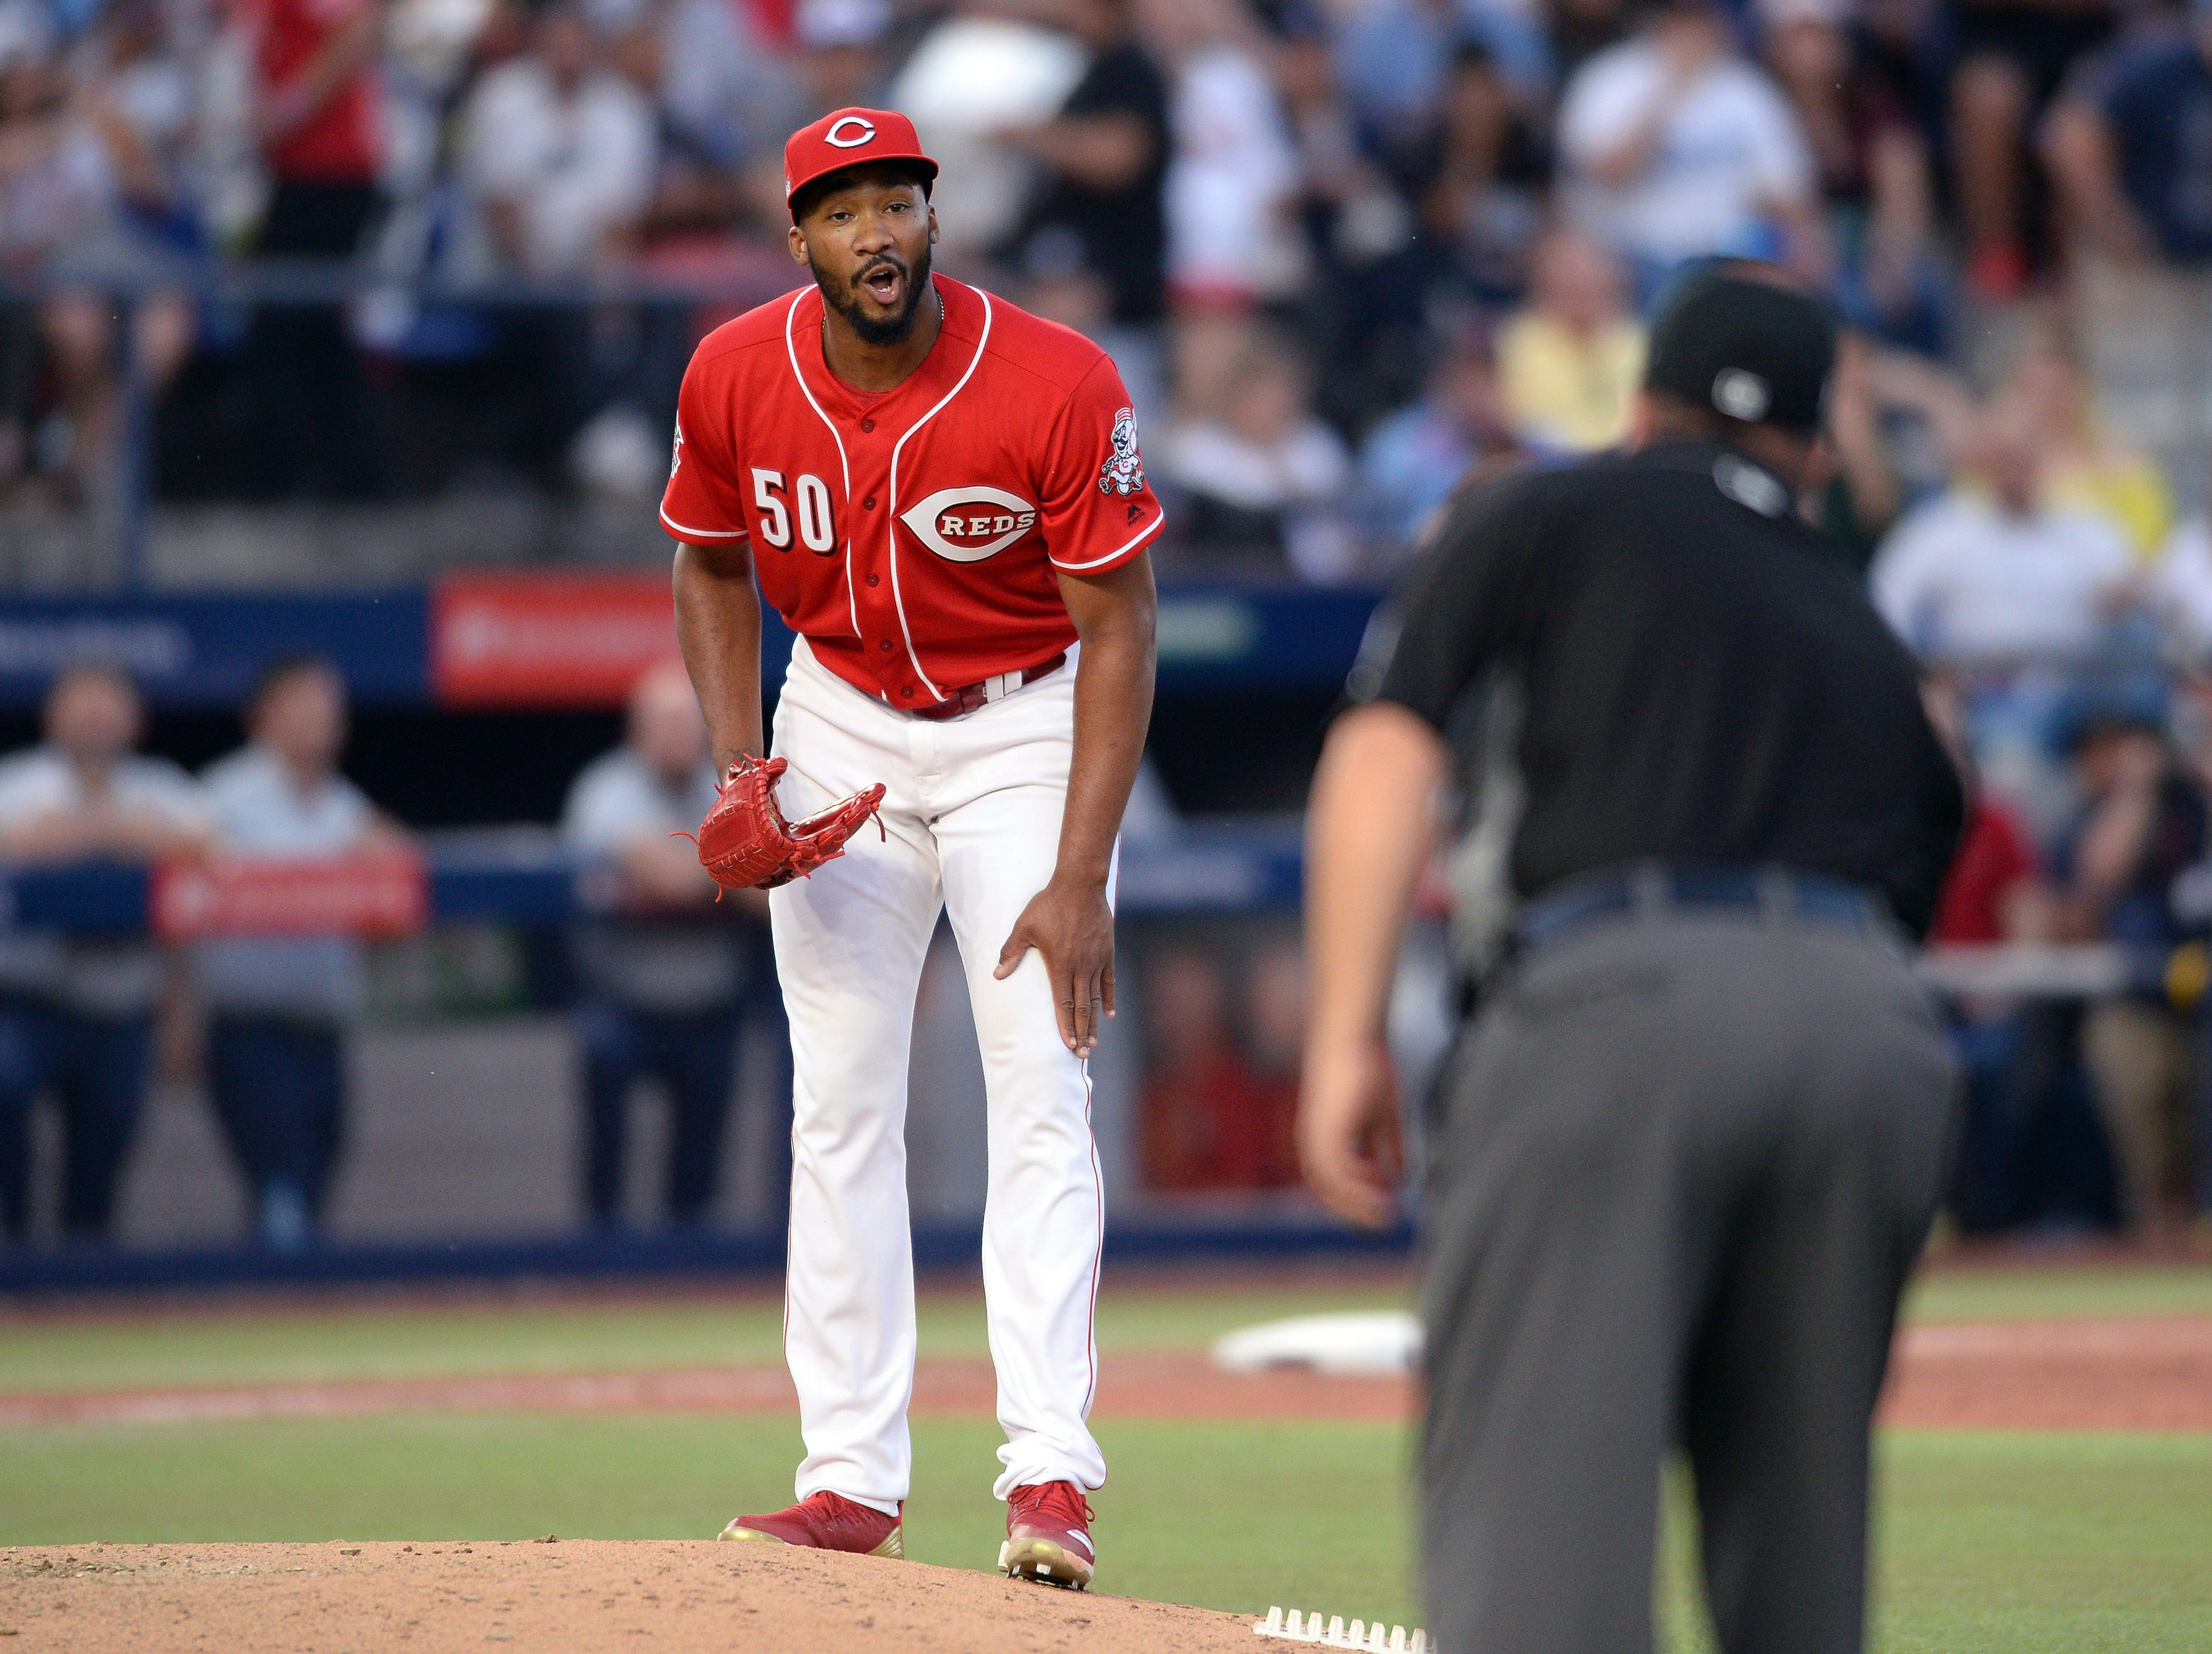 Cincinnati Reds relief pitcher Amir Garrett (50) reacts after a call by first base umpire Sam Holbrook (right) during the sixth inning of the game against the St. Louis Cardinals at Estadio de Beisbol Monterrey.